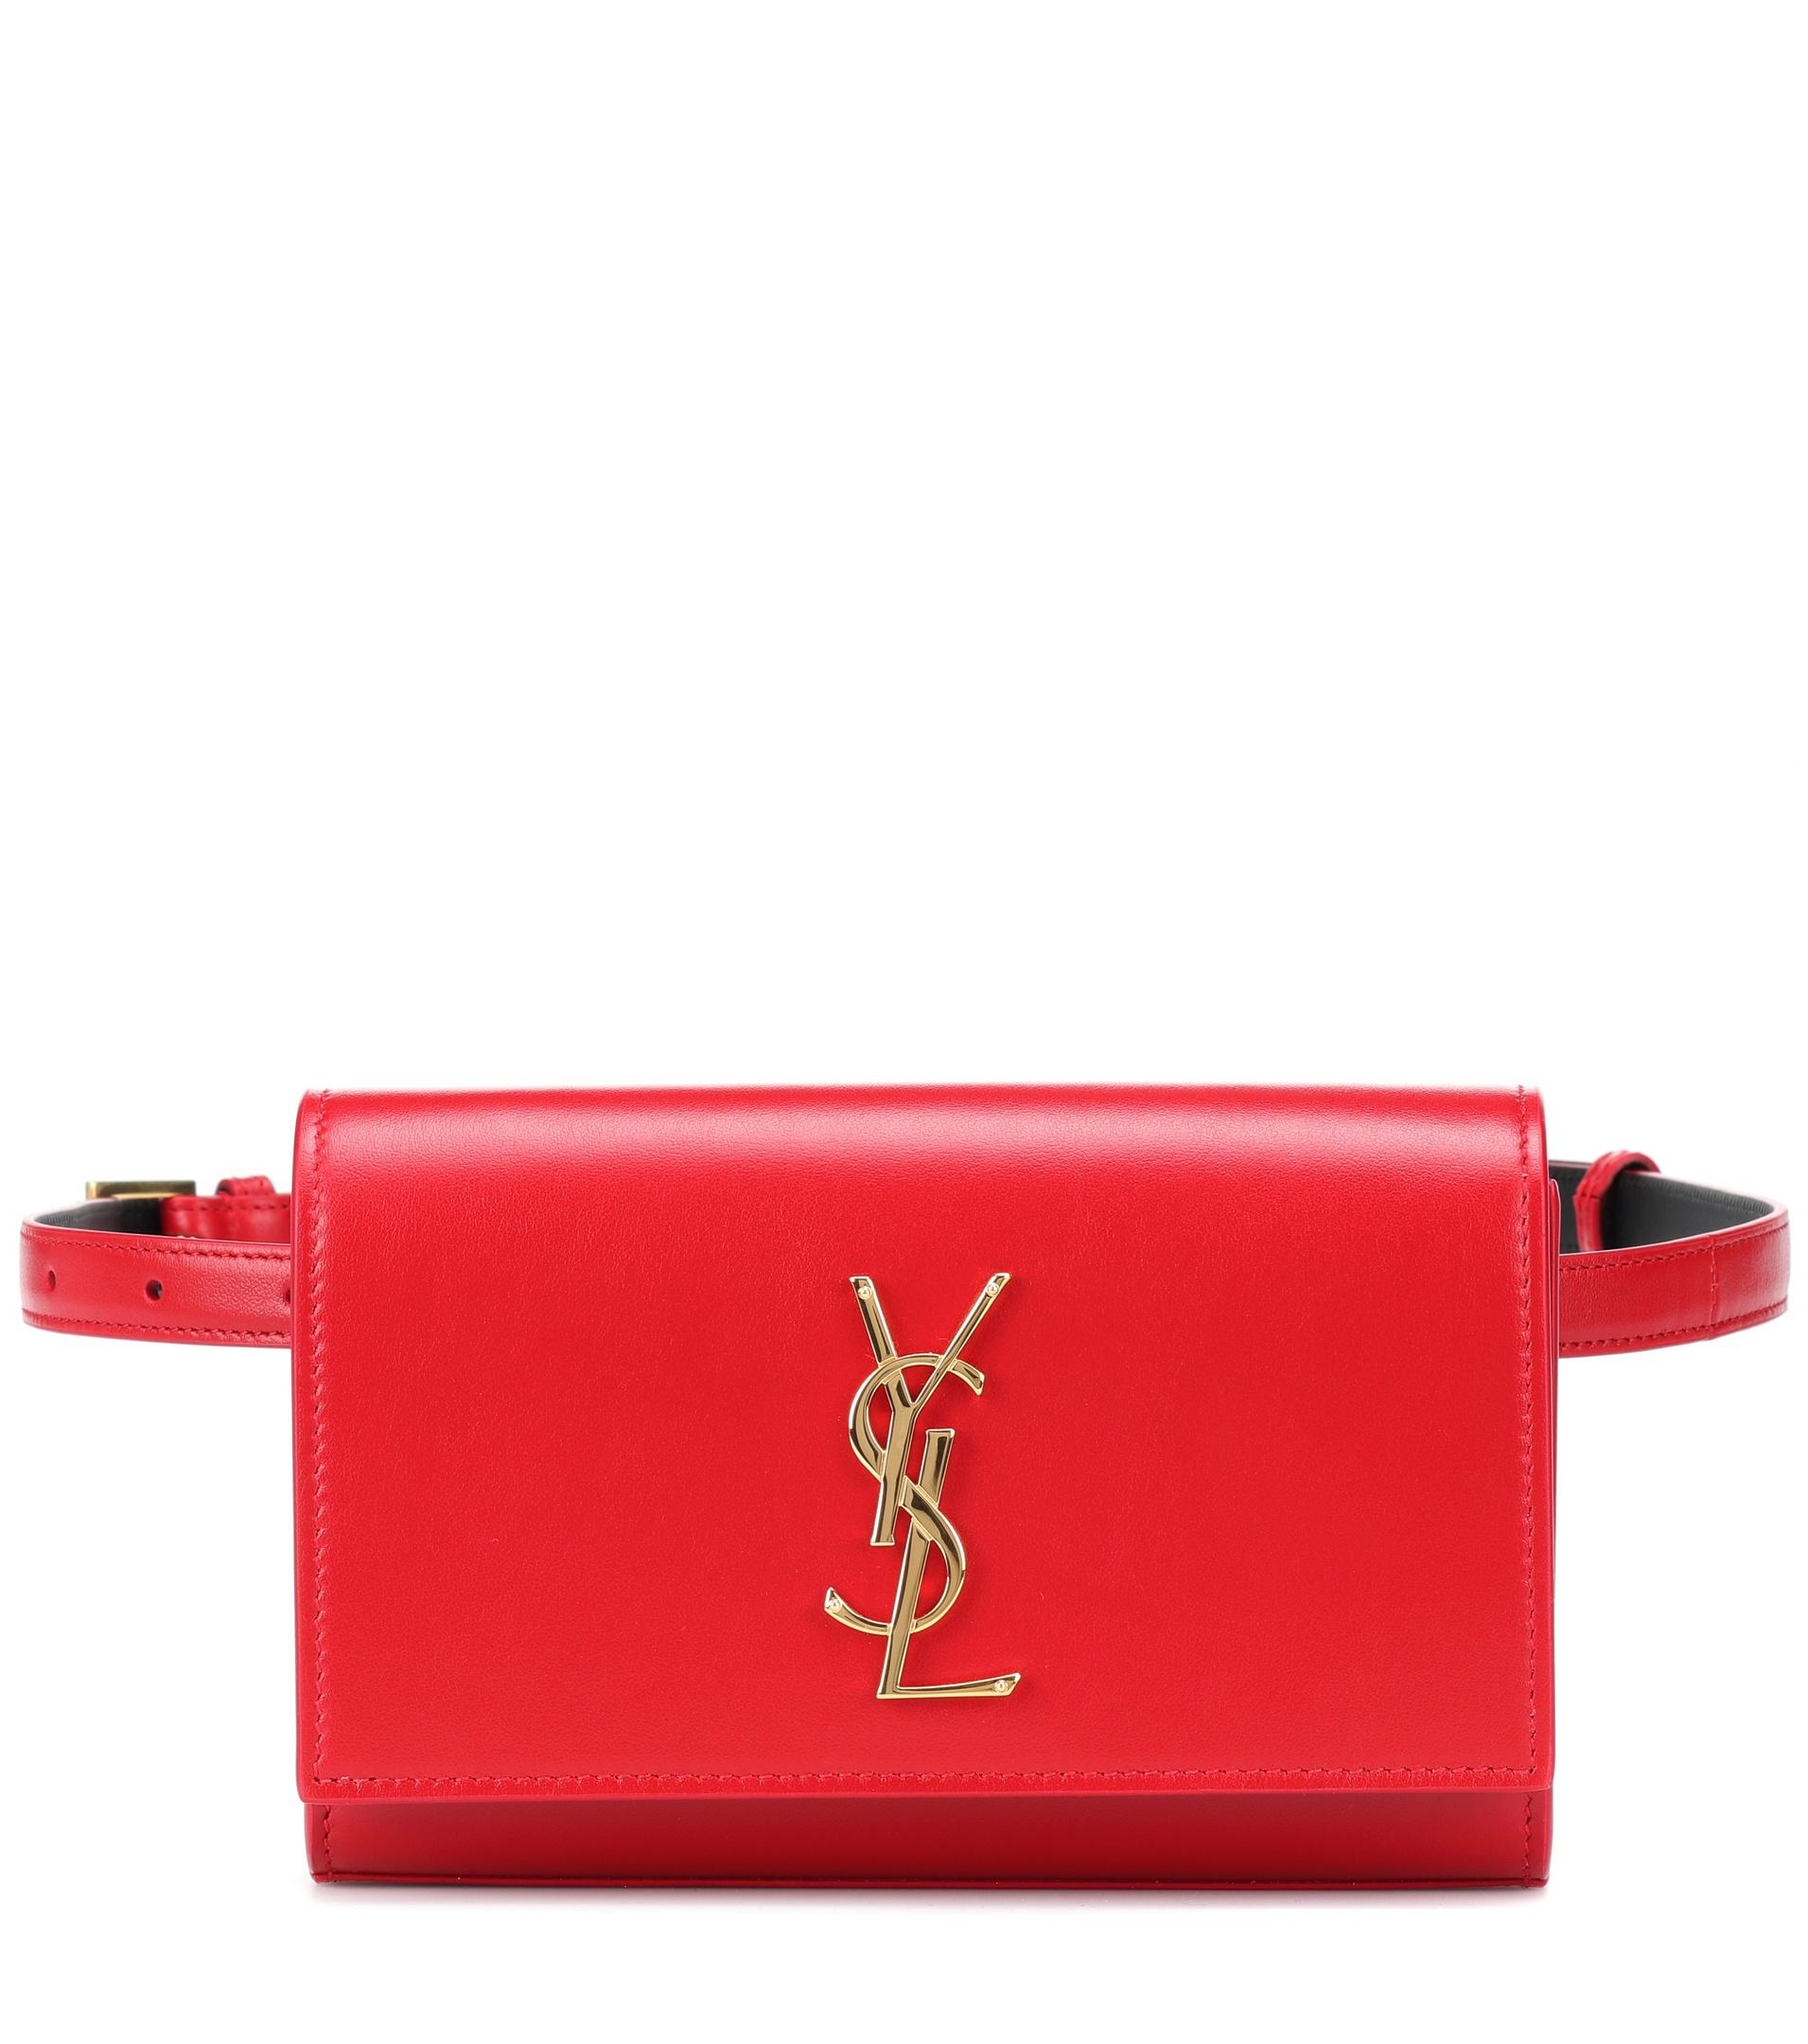 a541d0292278 Saint Laurent Kate Leather Belt Bag in Red - Lyst